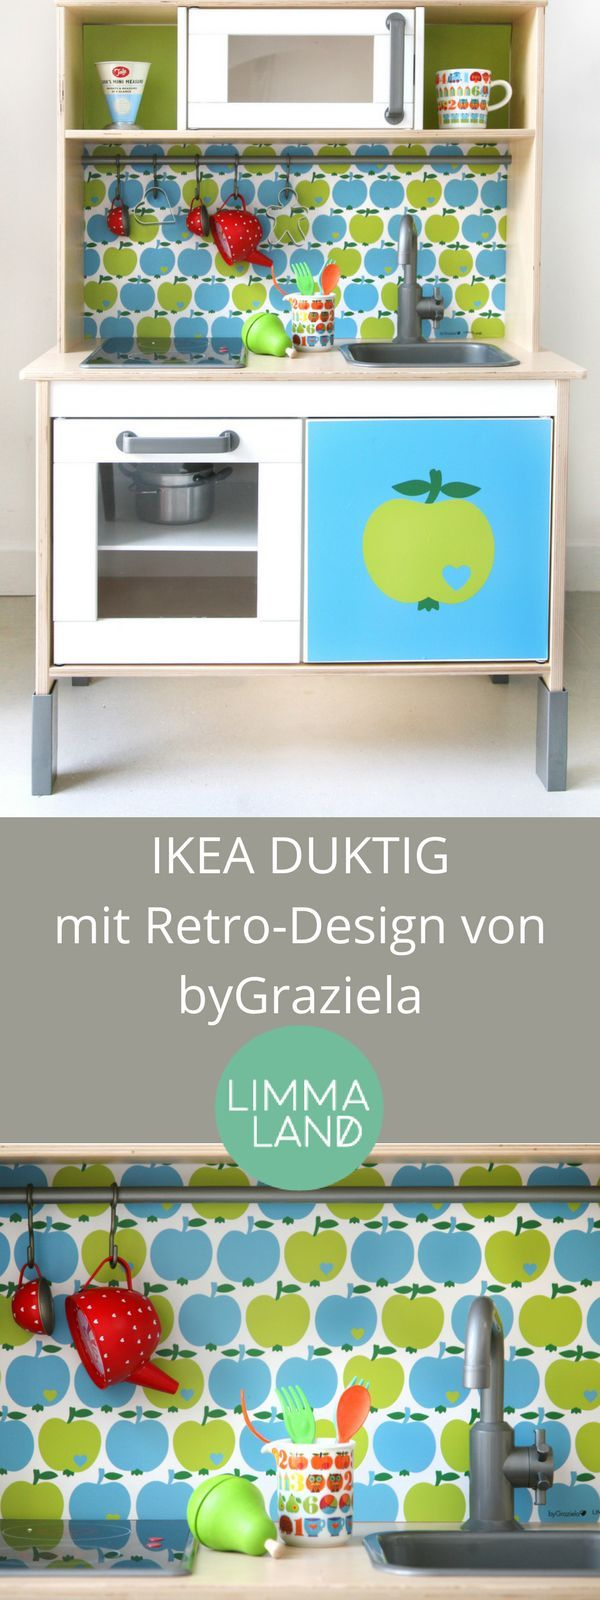 75 besten ikea hack duktig kinderk che bilder auf. Black Bedroom Furniture Sets. Home Design Ideas